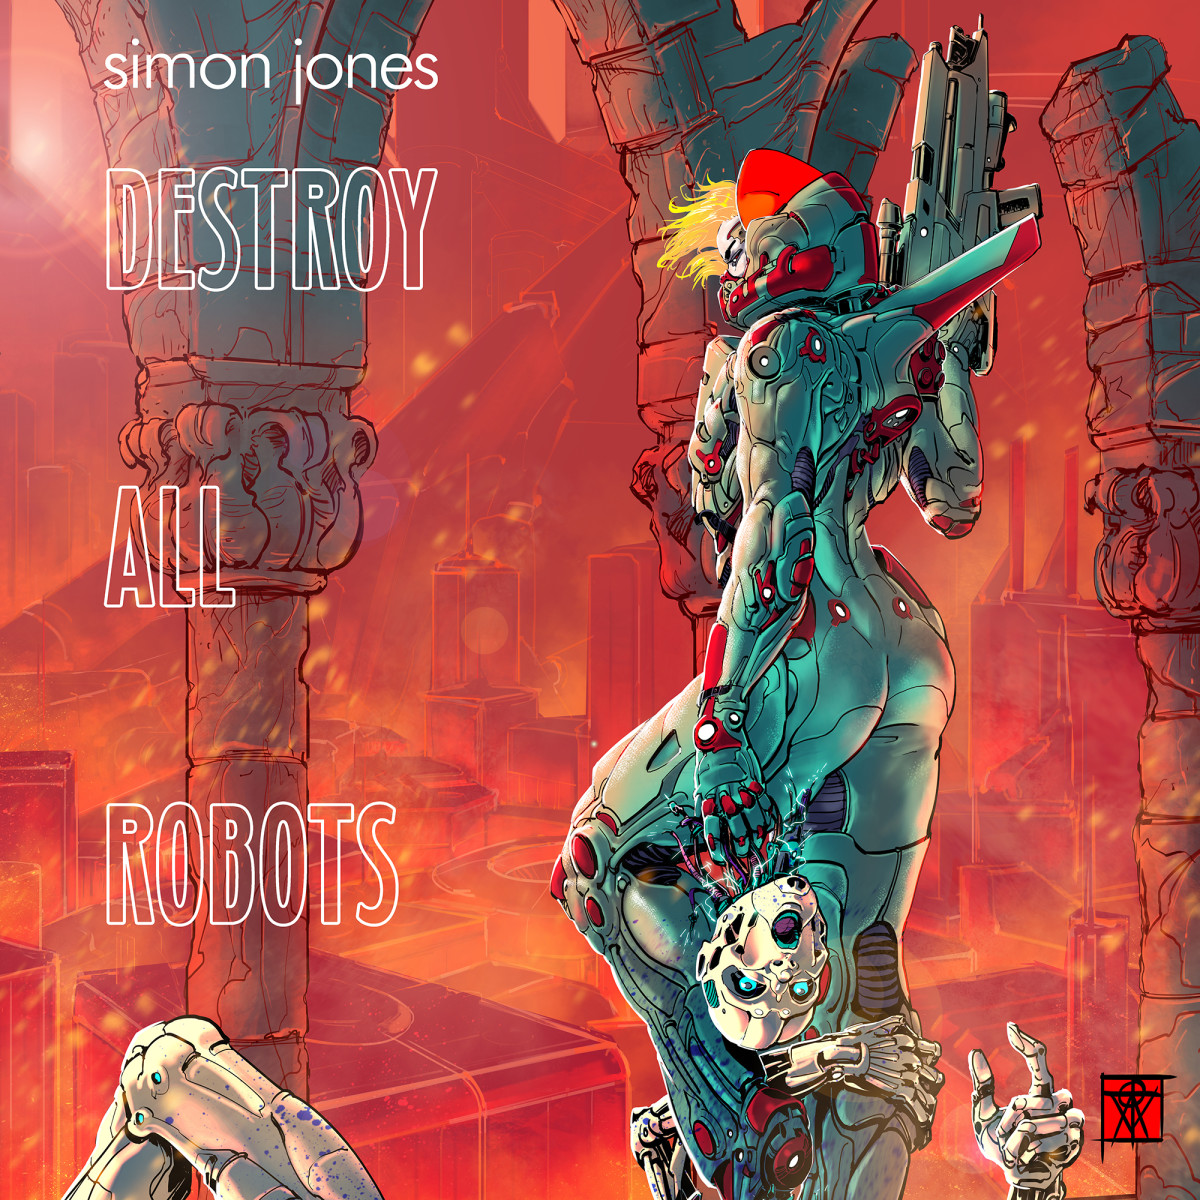 synth-album-review-destroy-all-robots-by-simon-jones